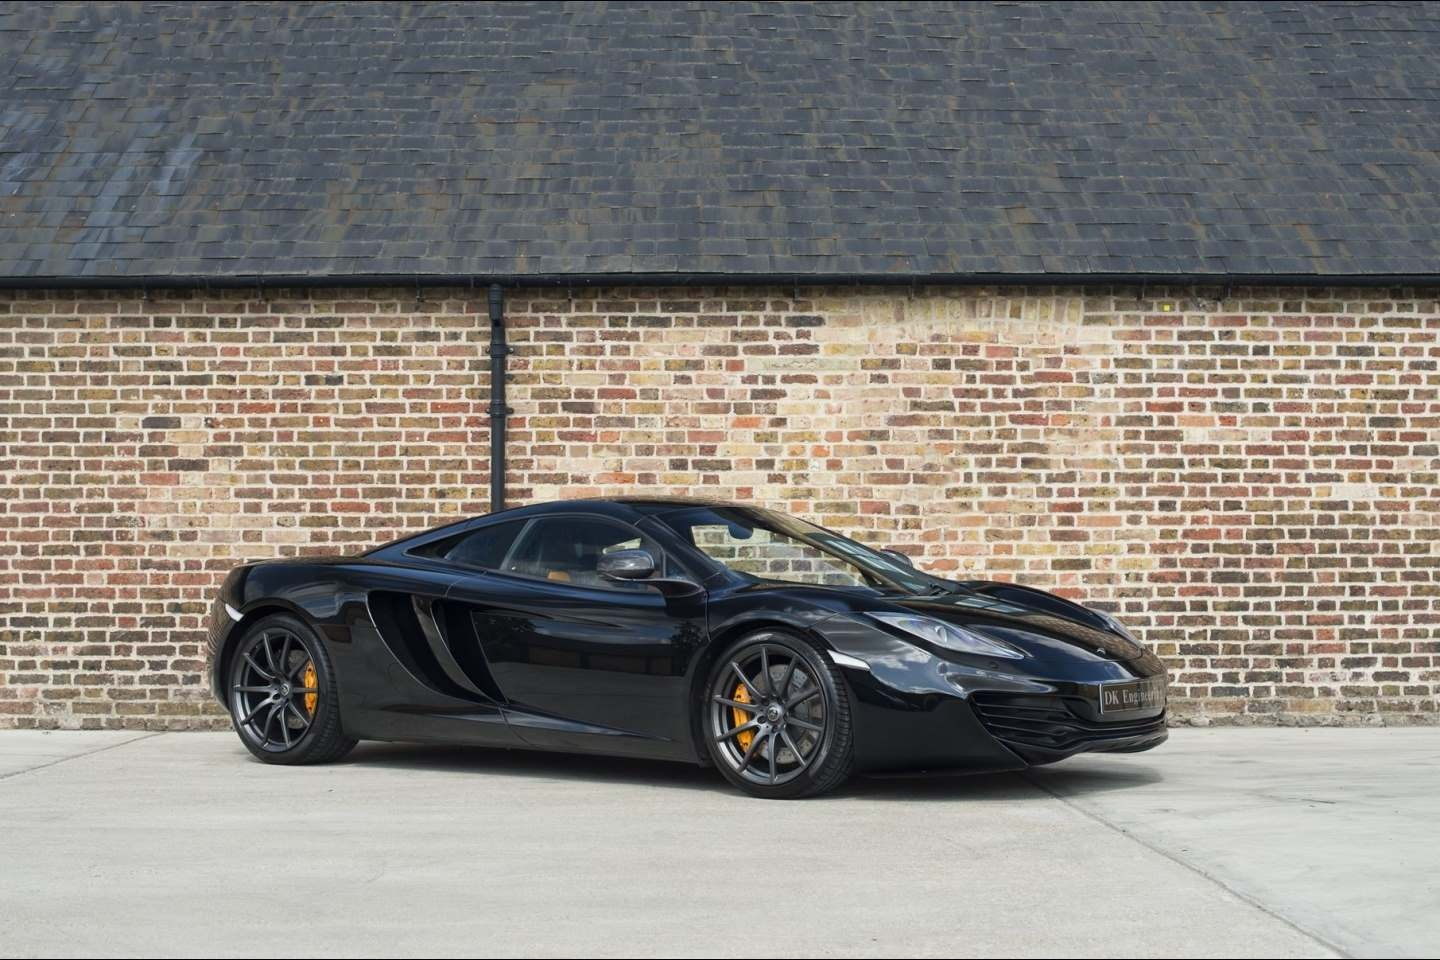 mclaren mp4-12c for sale - vehicle sales - dk engineering